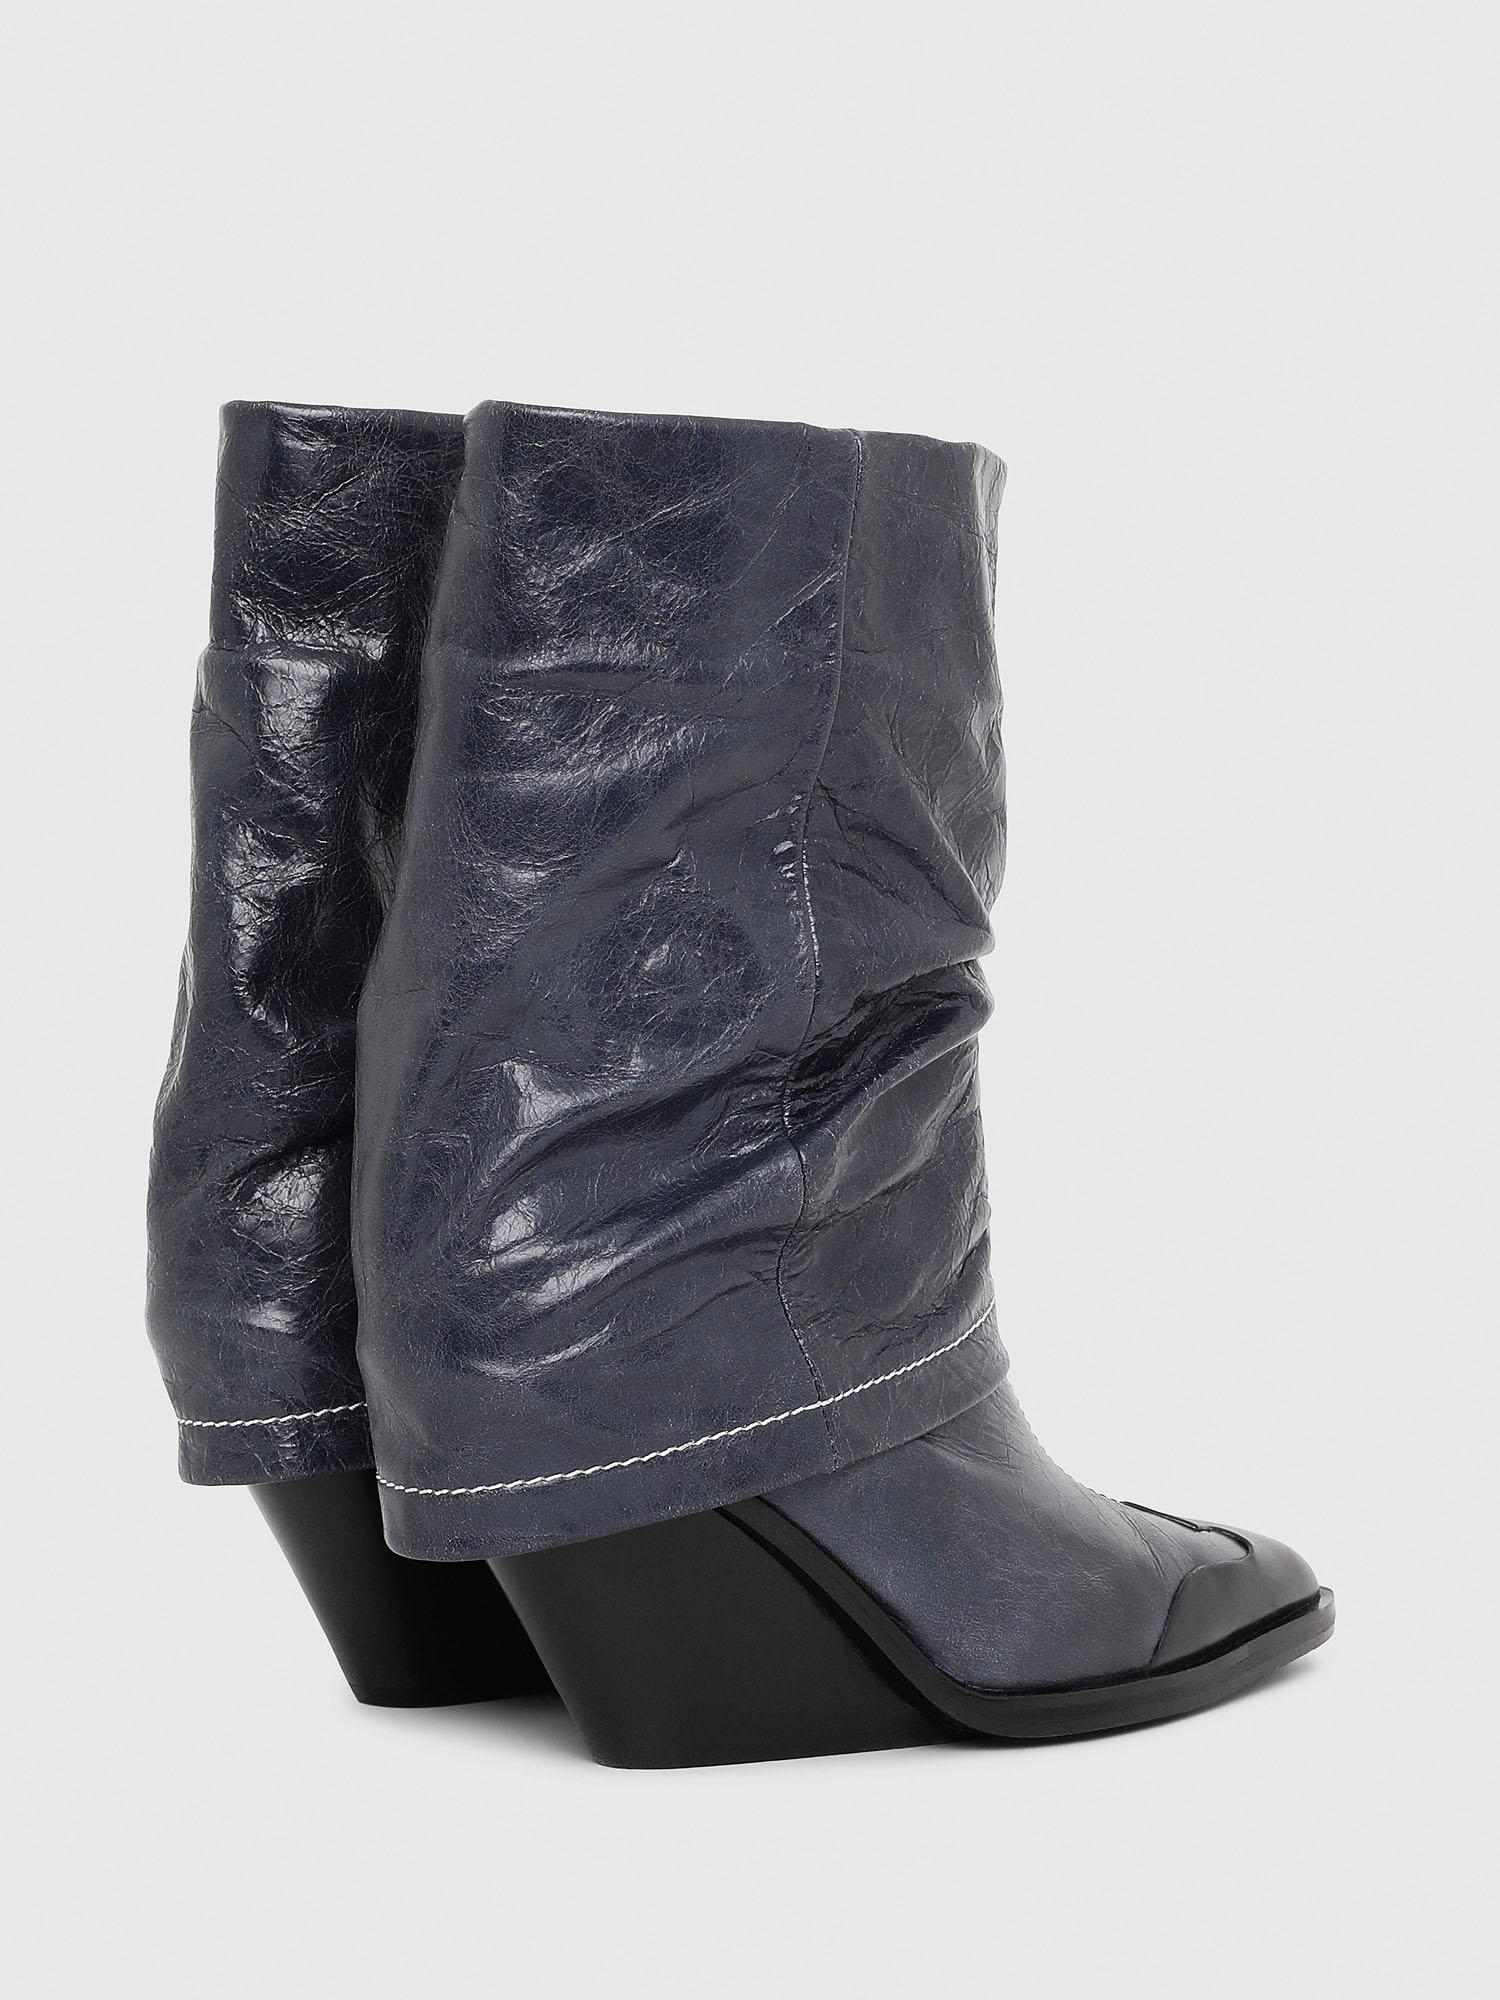 Diesel - D-WEST MB,  - Ankle Boots - Image 3